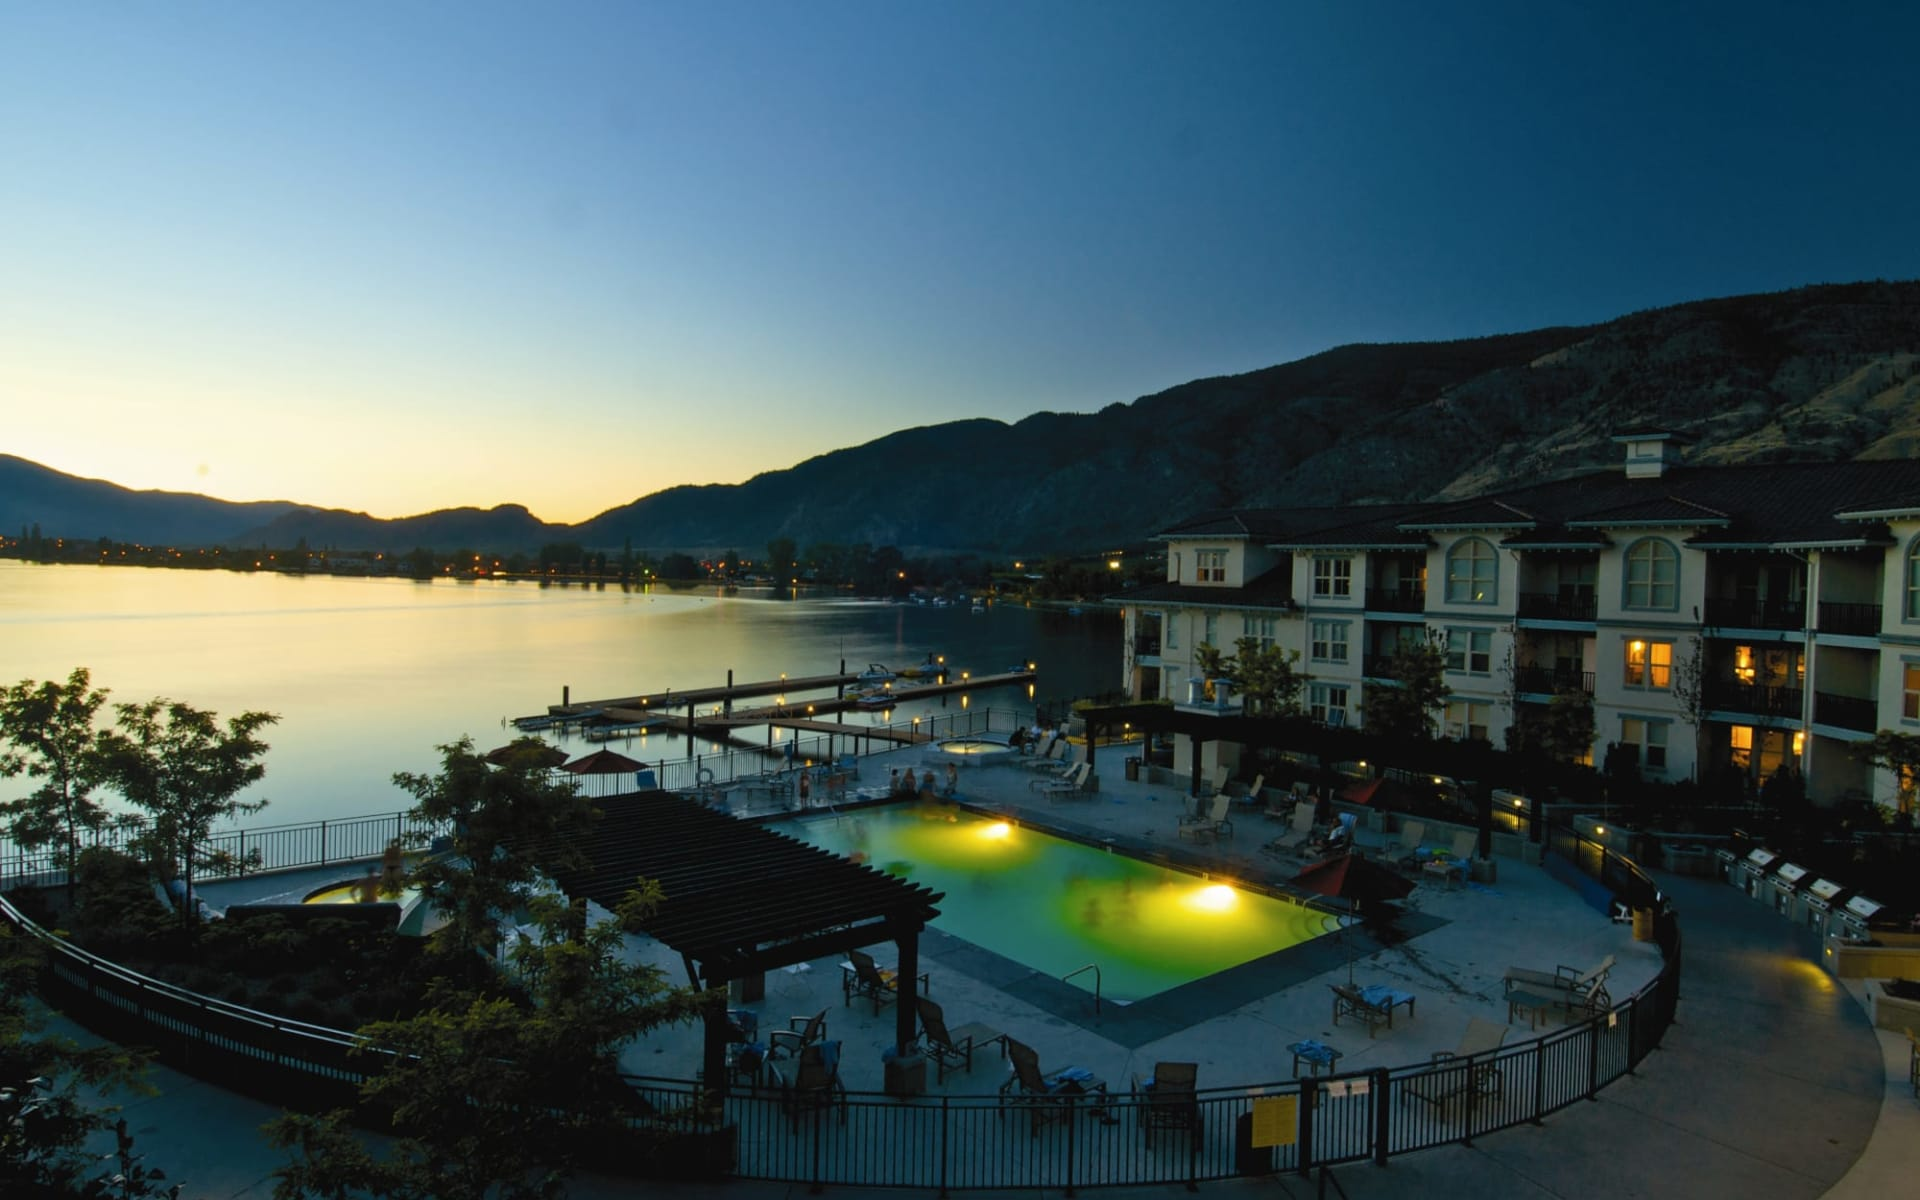 Walnut Beach Resort in Osoyoos: exterior_Walnut Beach Resort_NightView